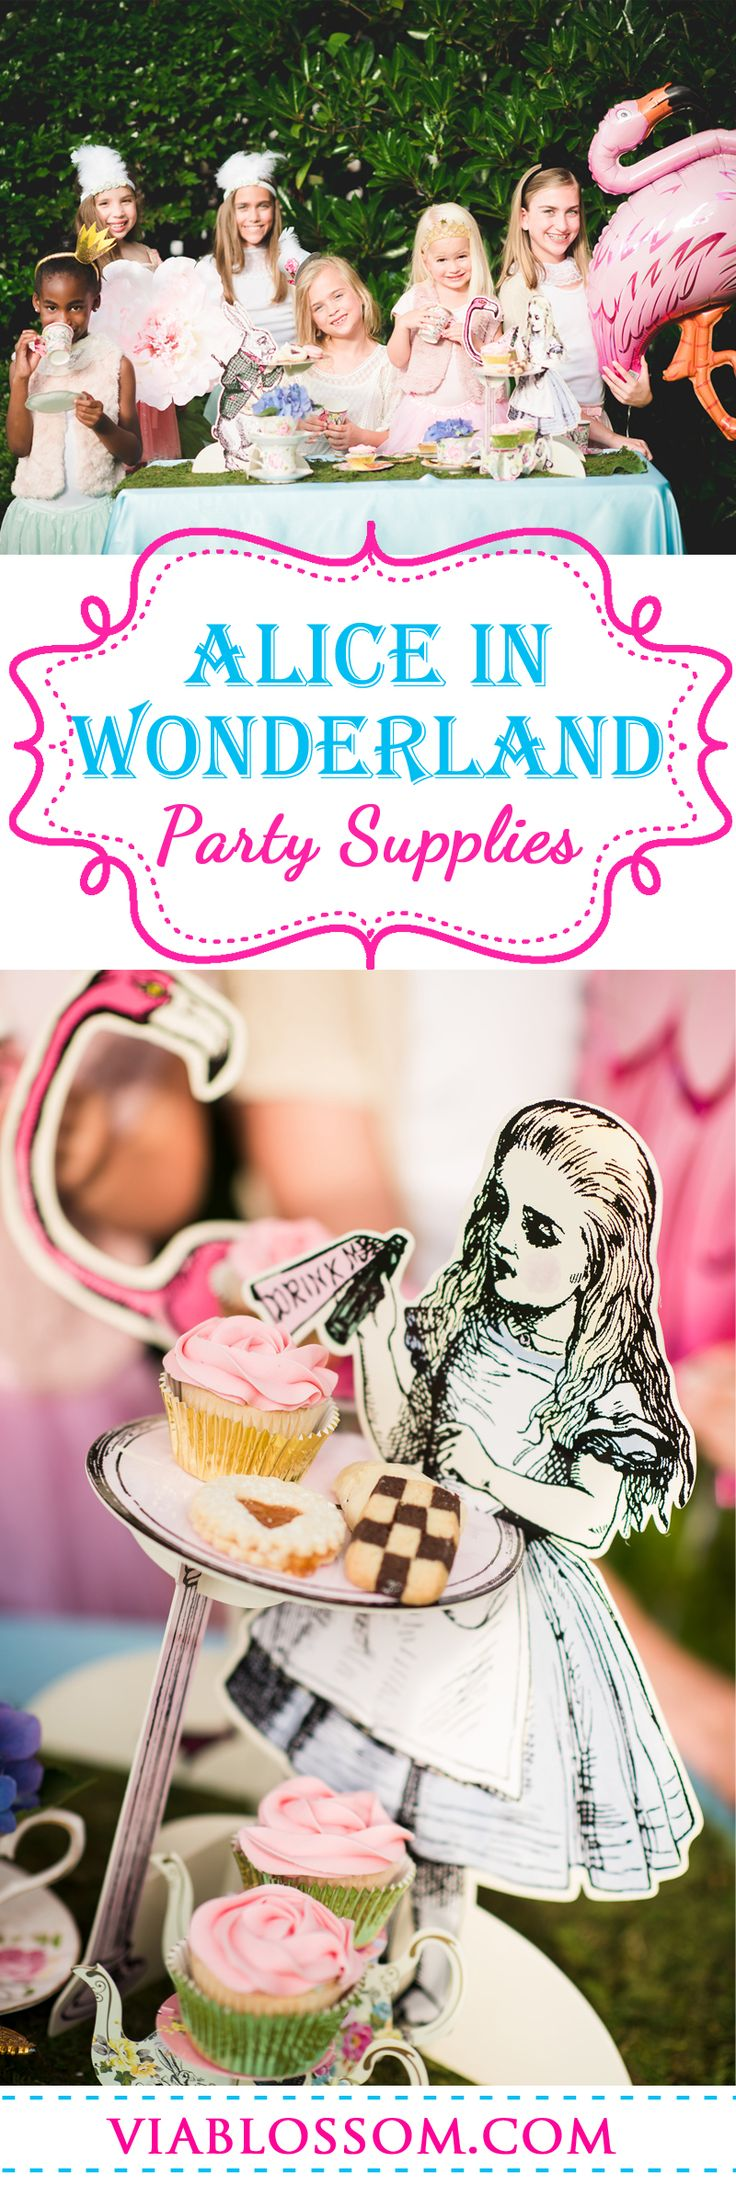 Must have Alice in Wonderland Party ideas for a magical Mad Hatter Tea Party Birthday! All the Mad Hatter Tea Party Supplies you will need for an Alice in Wonderland Party!